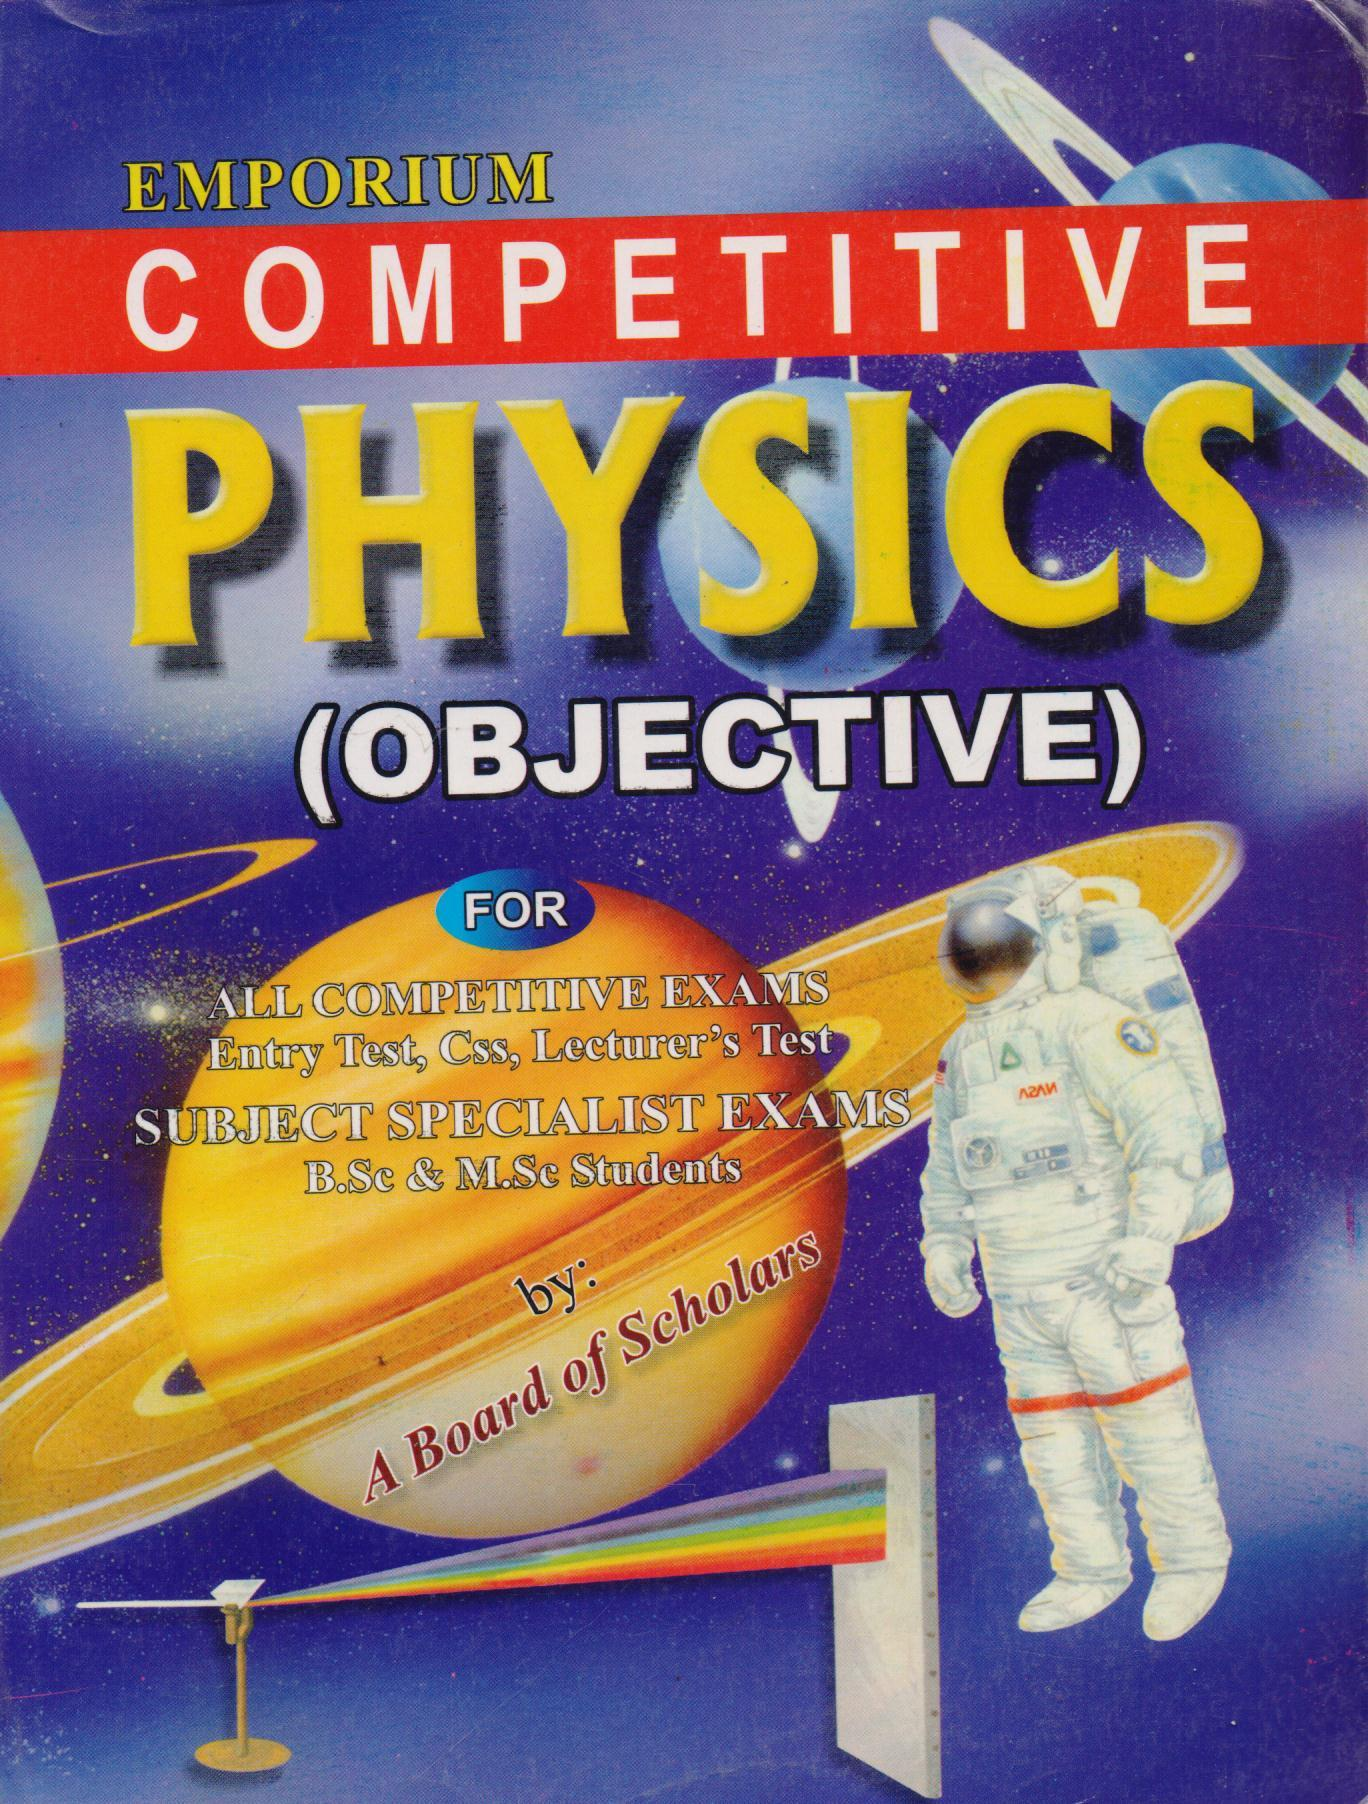 Emporium Competitive Physics Objective for Entry Test, CSS, Subject  Specialist